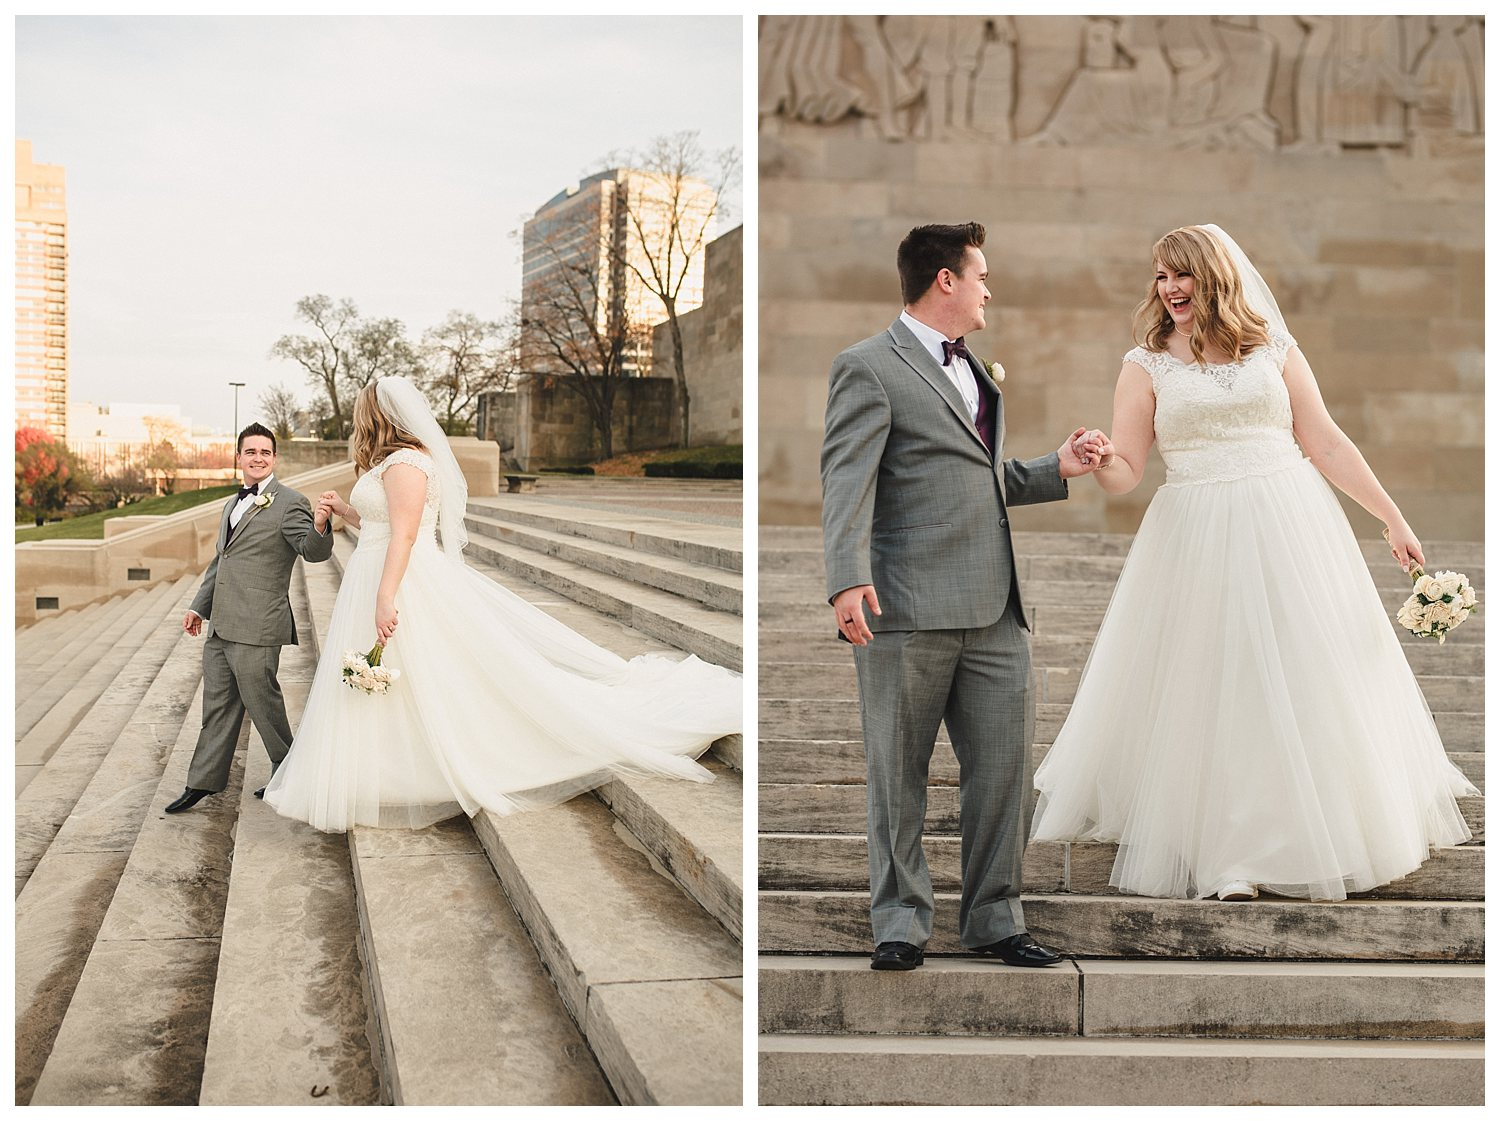 Kelsey_Diane_Photography_Loose_Mansion_Wedding_Photography_Kansas_City_Victor_Lyndsay_0363.jpg